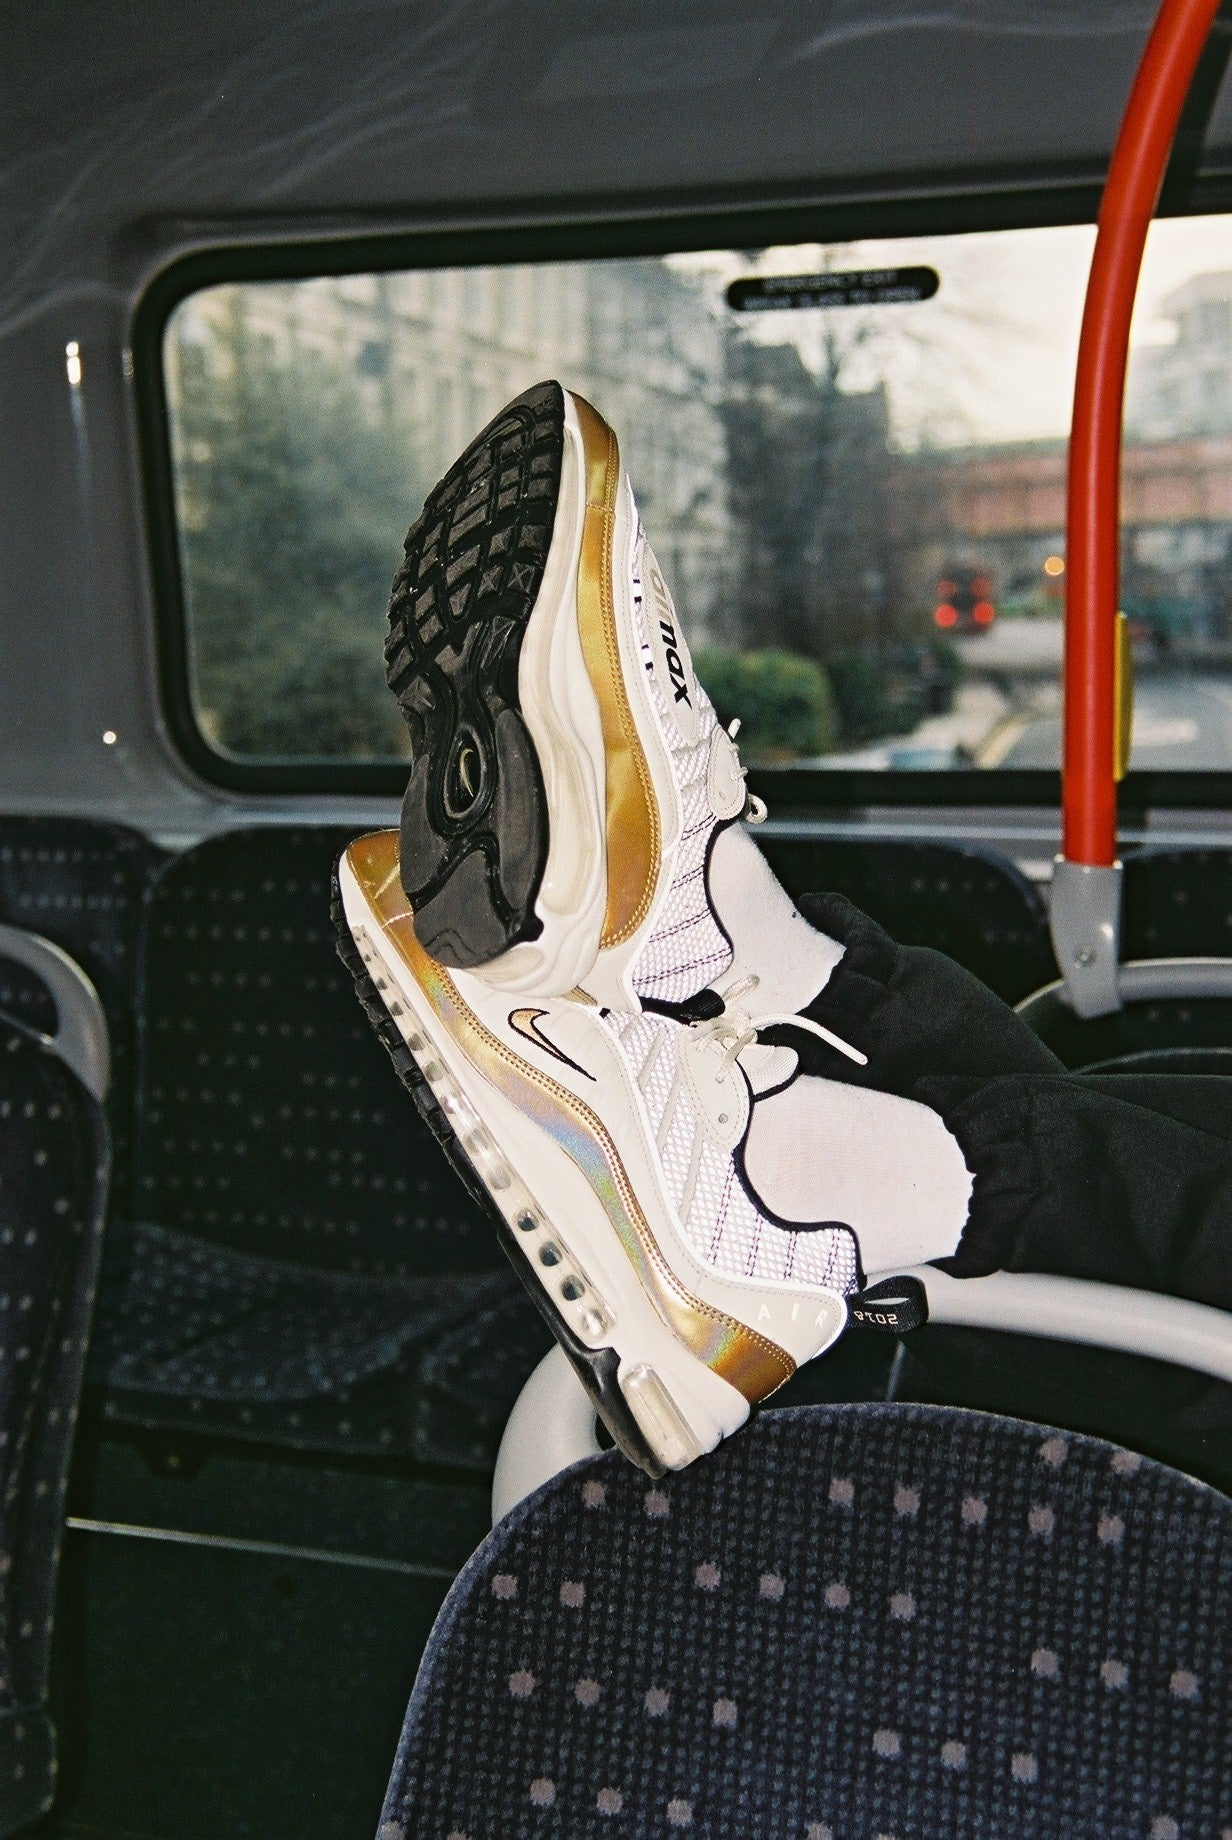 """super popular b376d 73ed9 Nike Air Max 98 """"GMT Pack"""" AJ6302-100. SUMMIT WHITEMETALLIC GOLD-BLACK  Price £149.00. Launch Friday 16th February ONLINE 0800GMT and IN-STORE  1000GMT"""